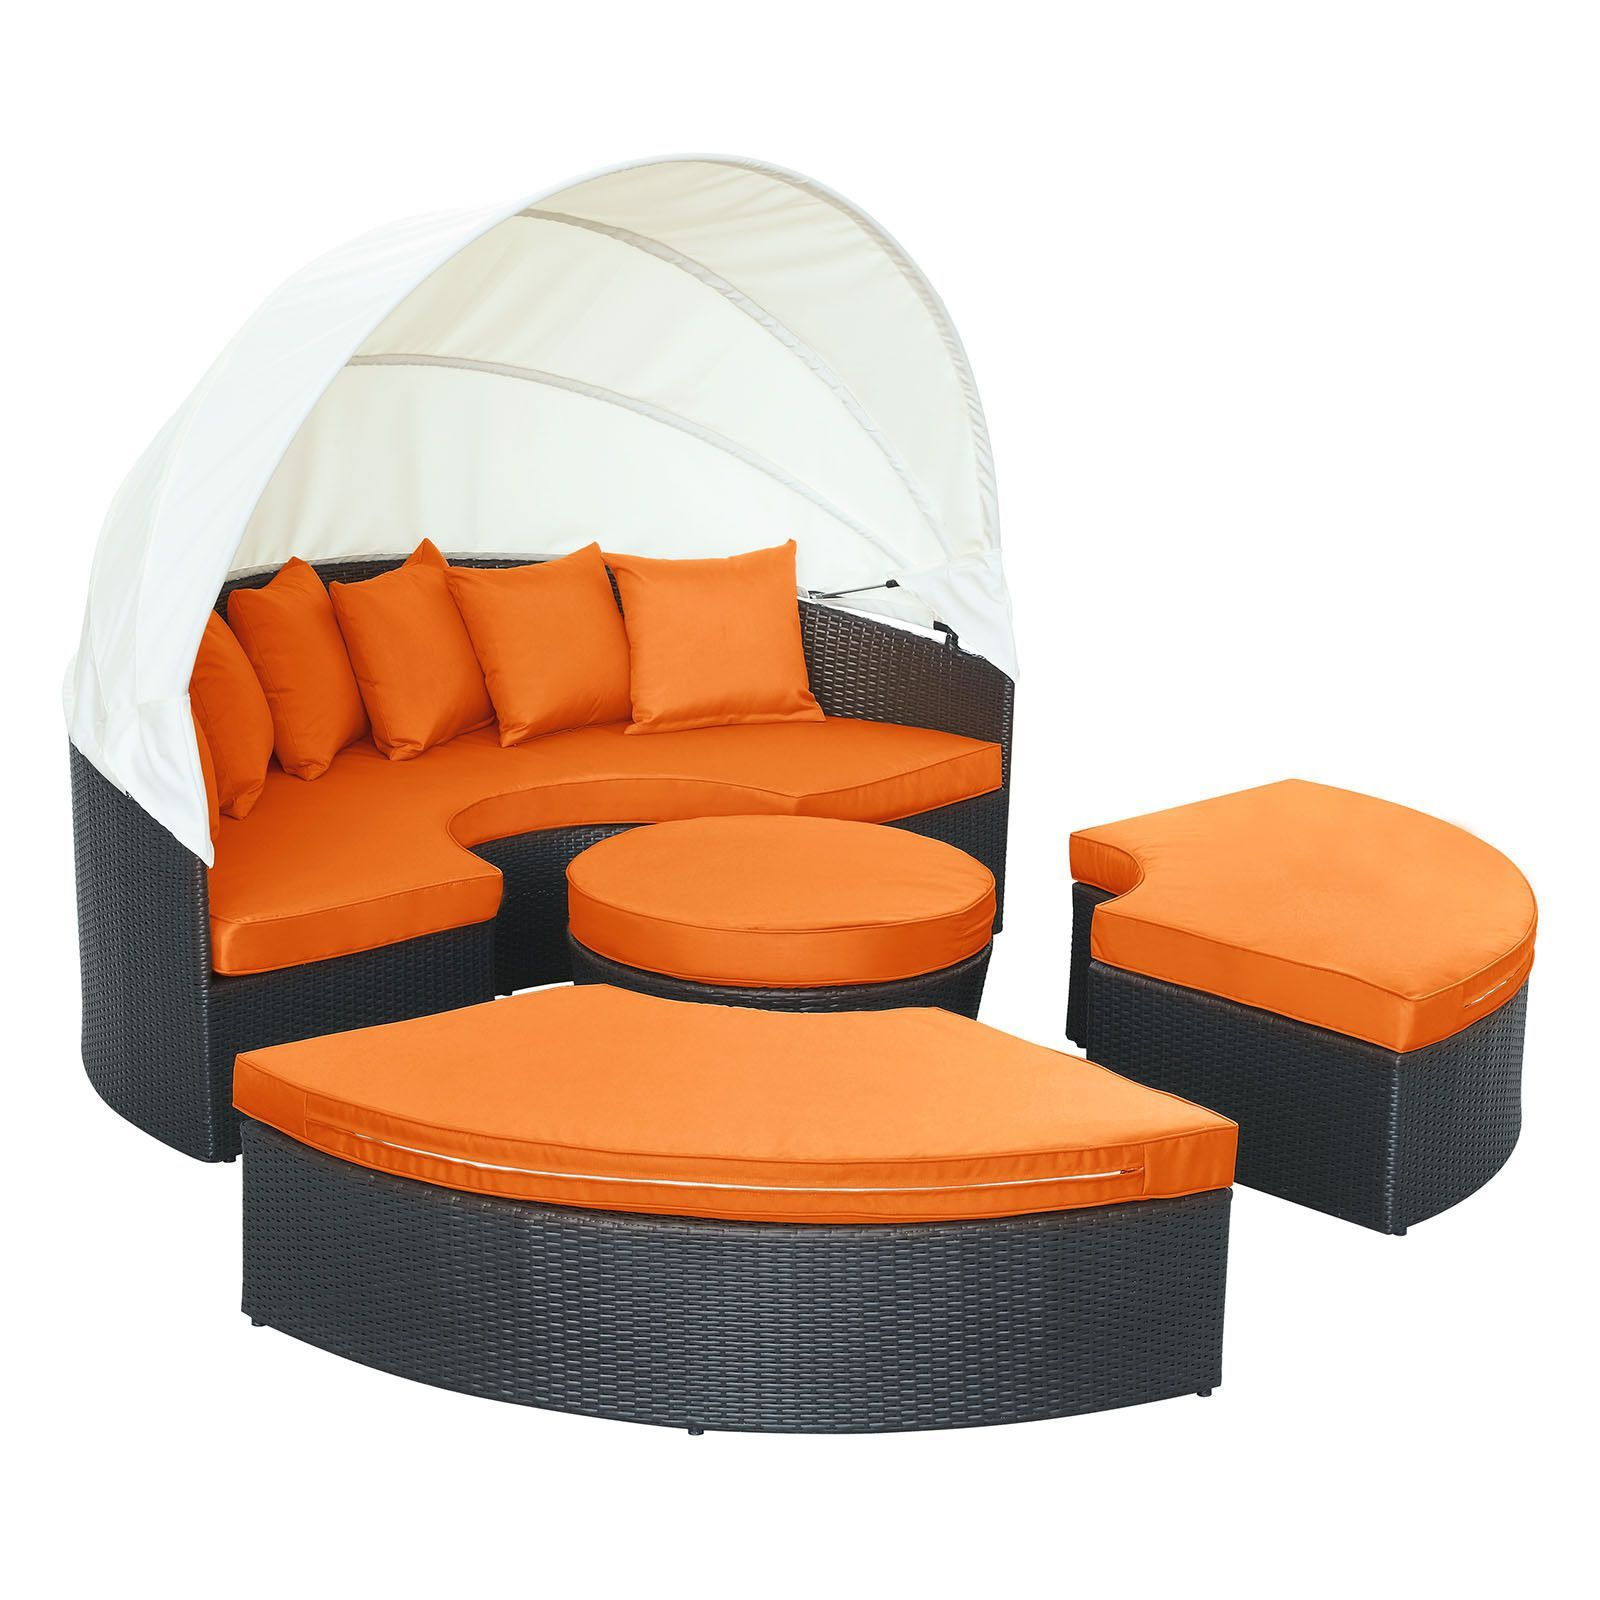 Buy Quest Canopy Outdoor Patio Daybed at ModelDeco for only